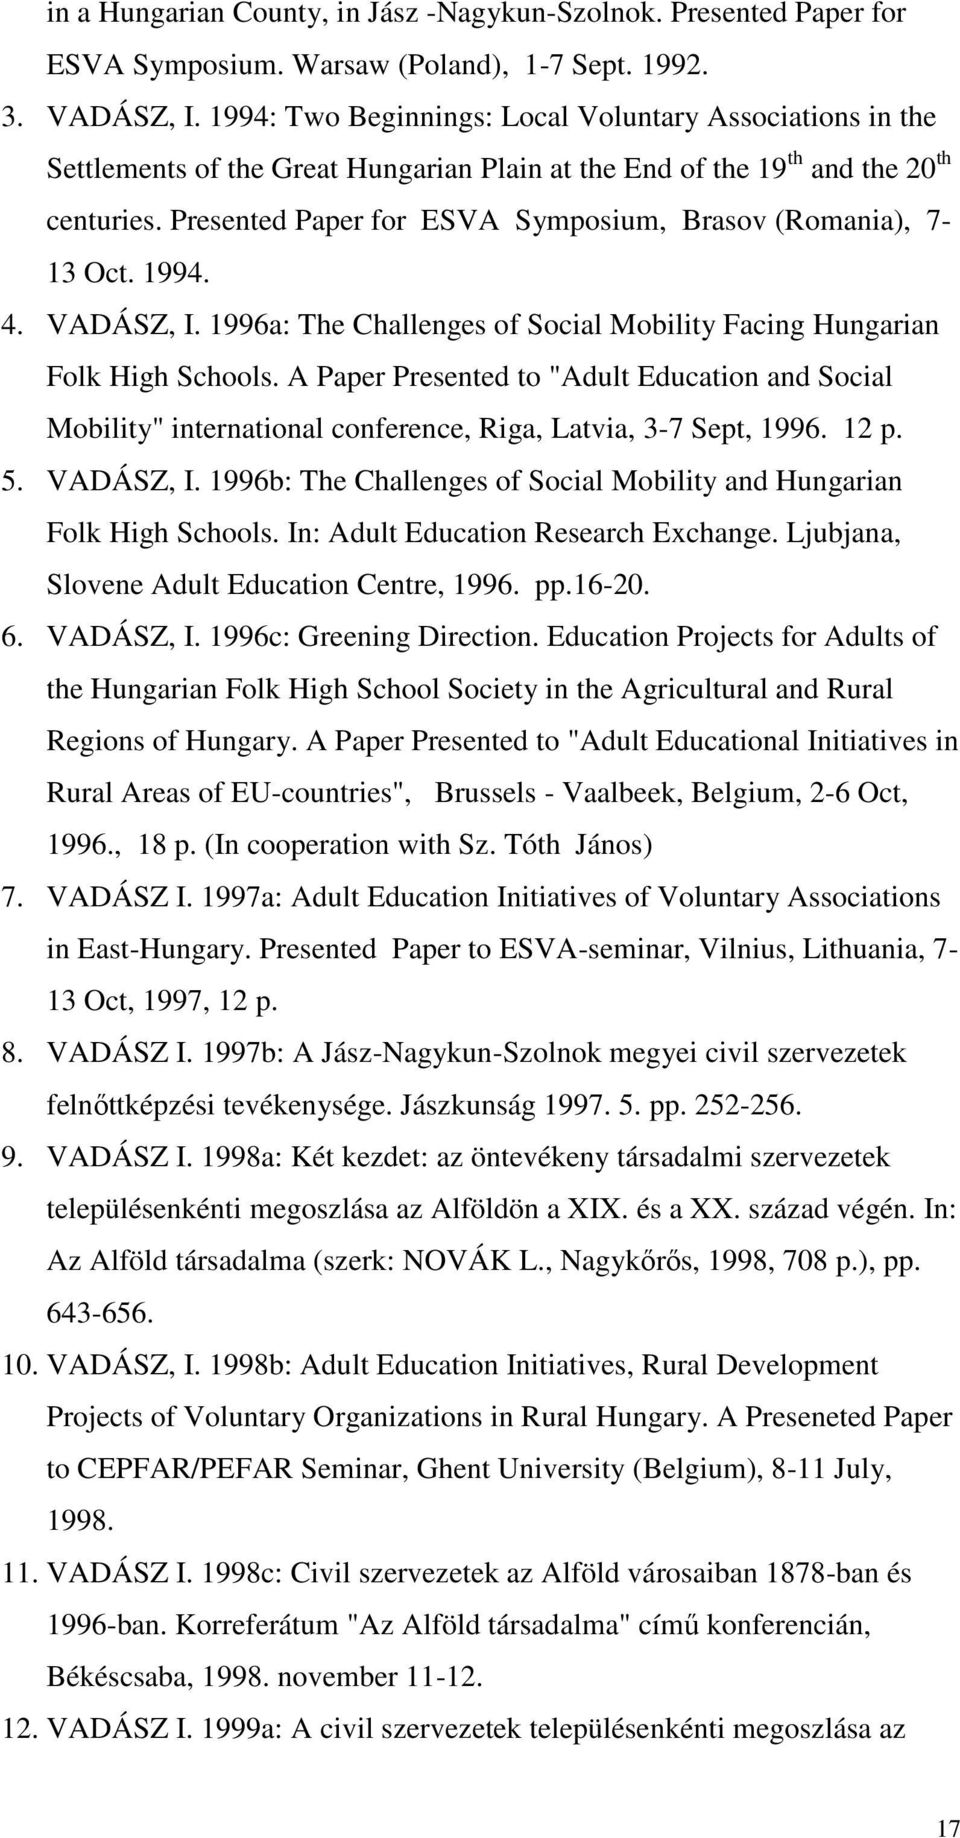 Presented Paper for ESVA Symposium, Brasov (Romania), 7-13 Oct. 1994. 4. VADÁSZ, I. 1996a: The Challenges of Social Mobility Facing Hungarian Folk High Schools.